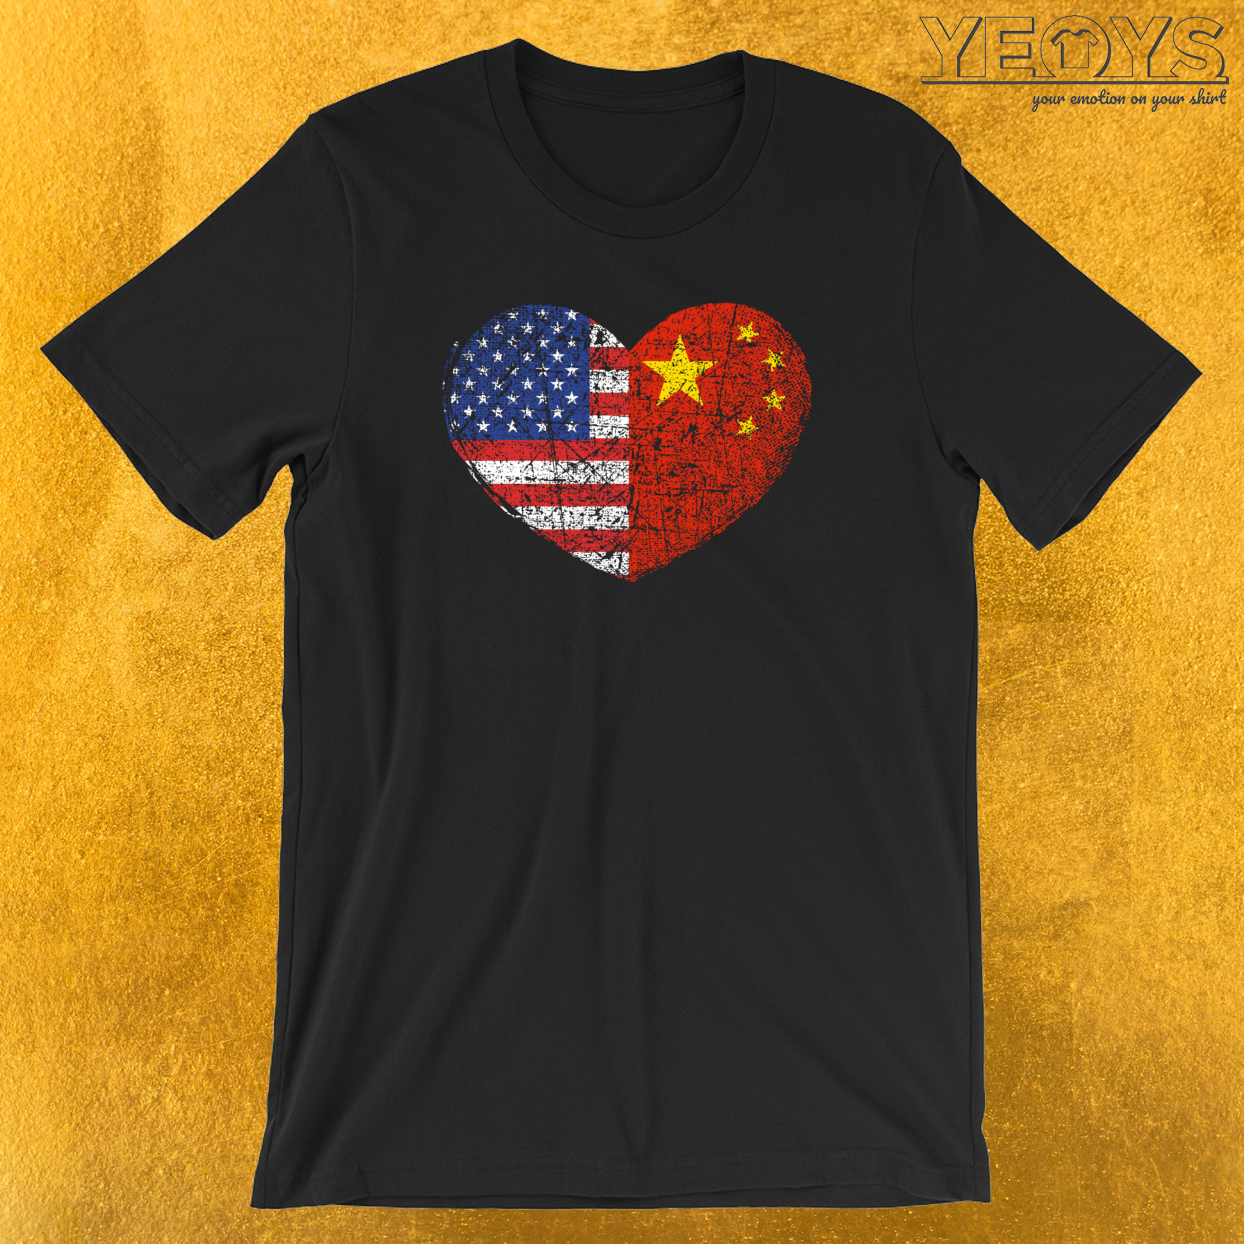 USA China Heart T-Shirt